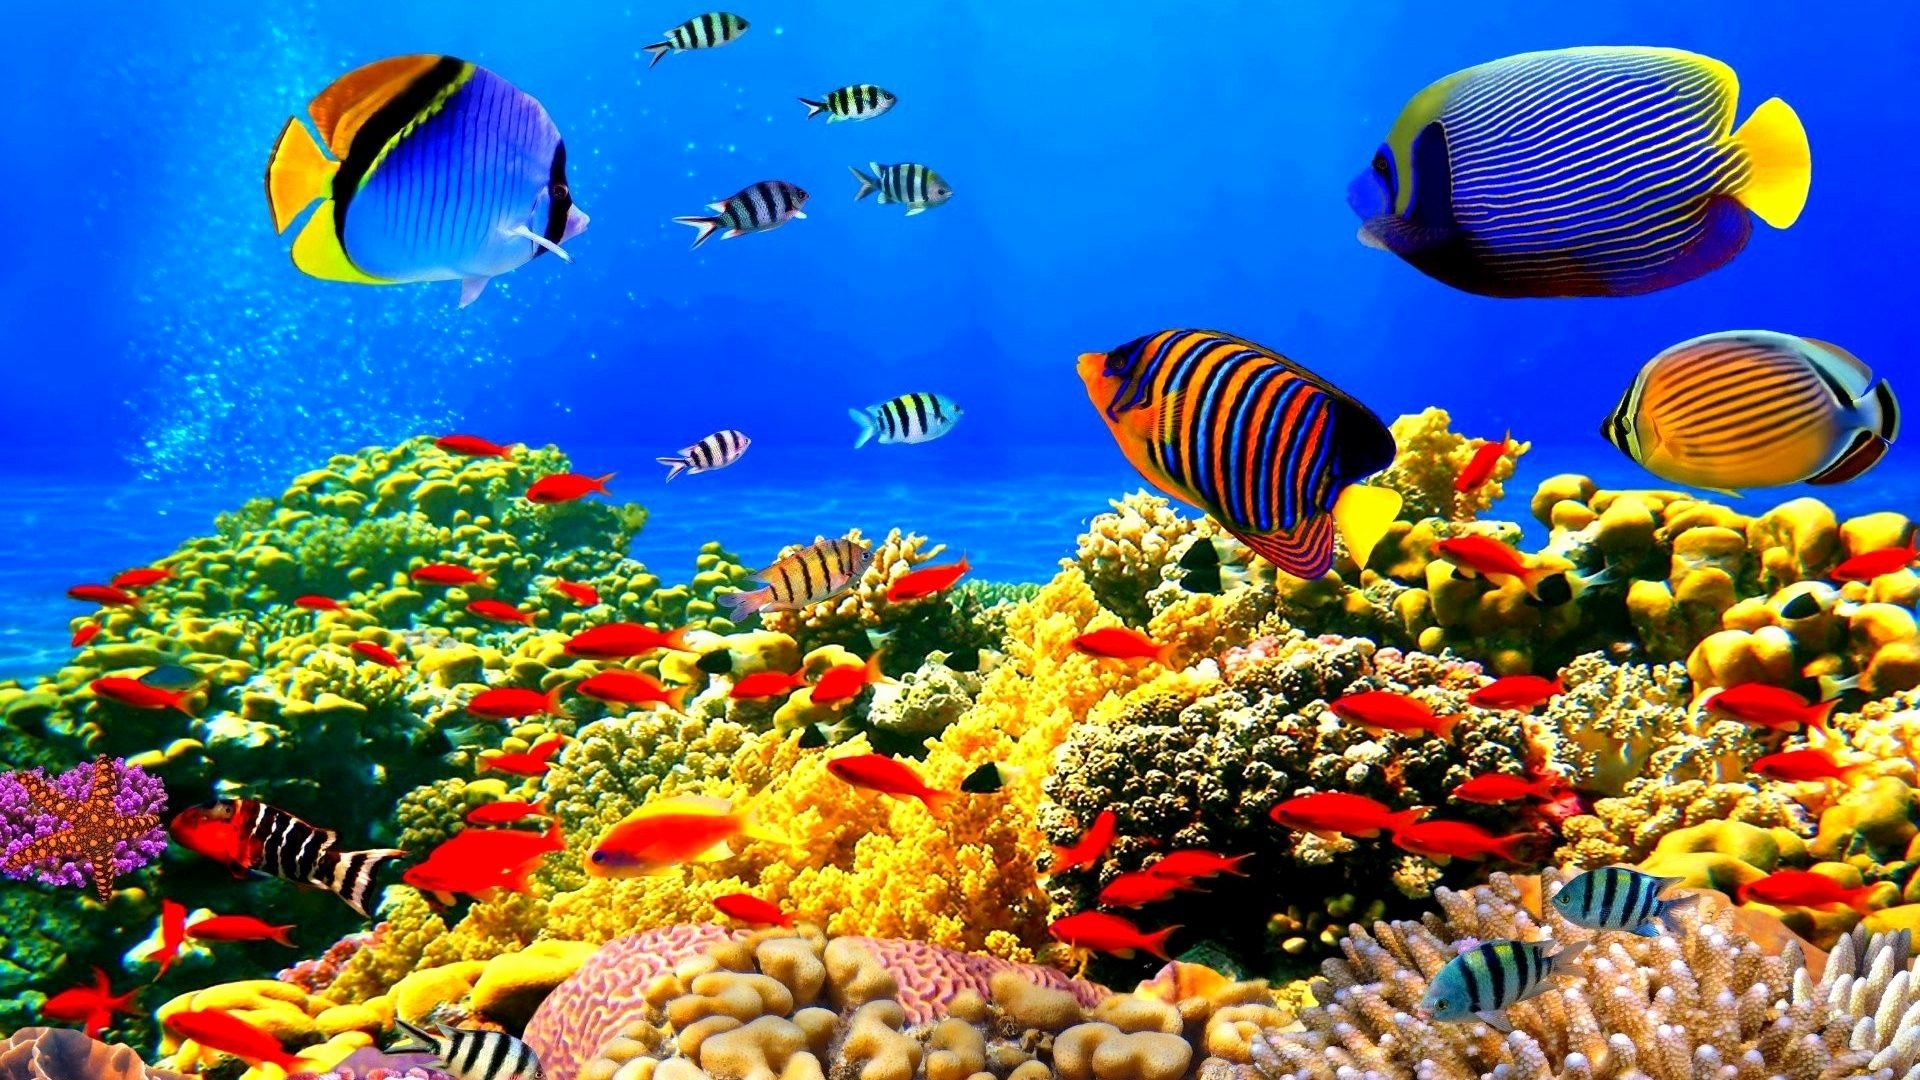 3d Fish Tank Wallpaper Best Of 3d Fish Tank Wallpaper 59 Images